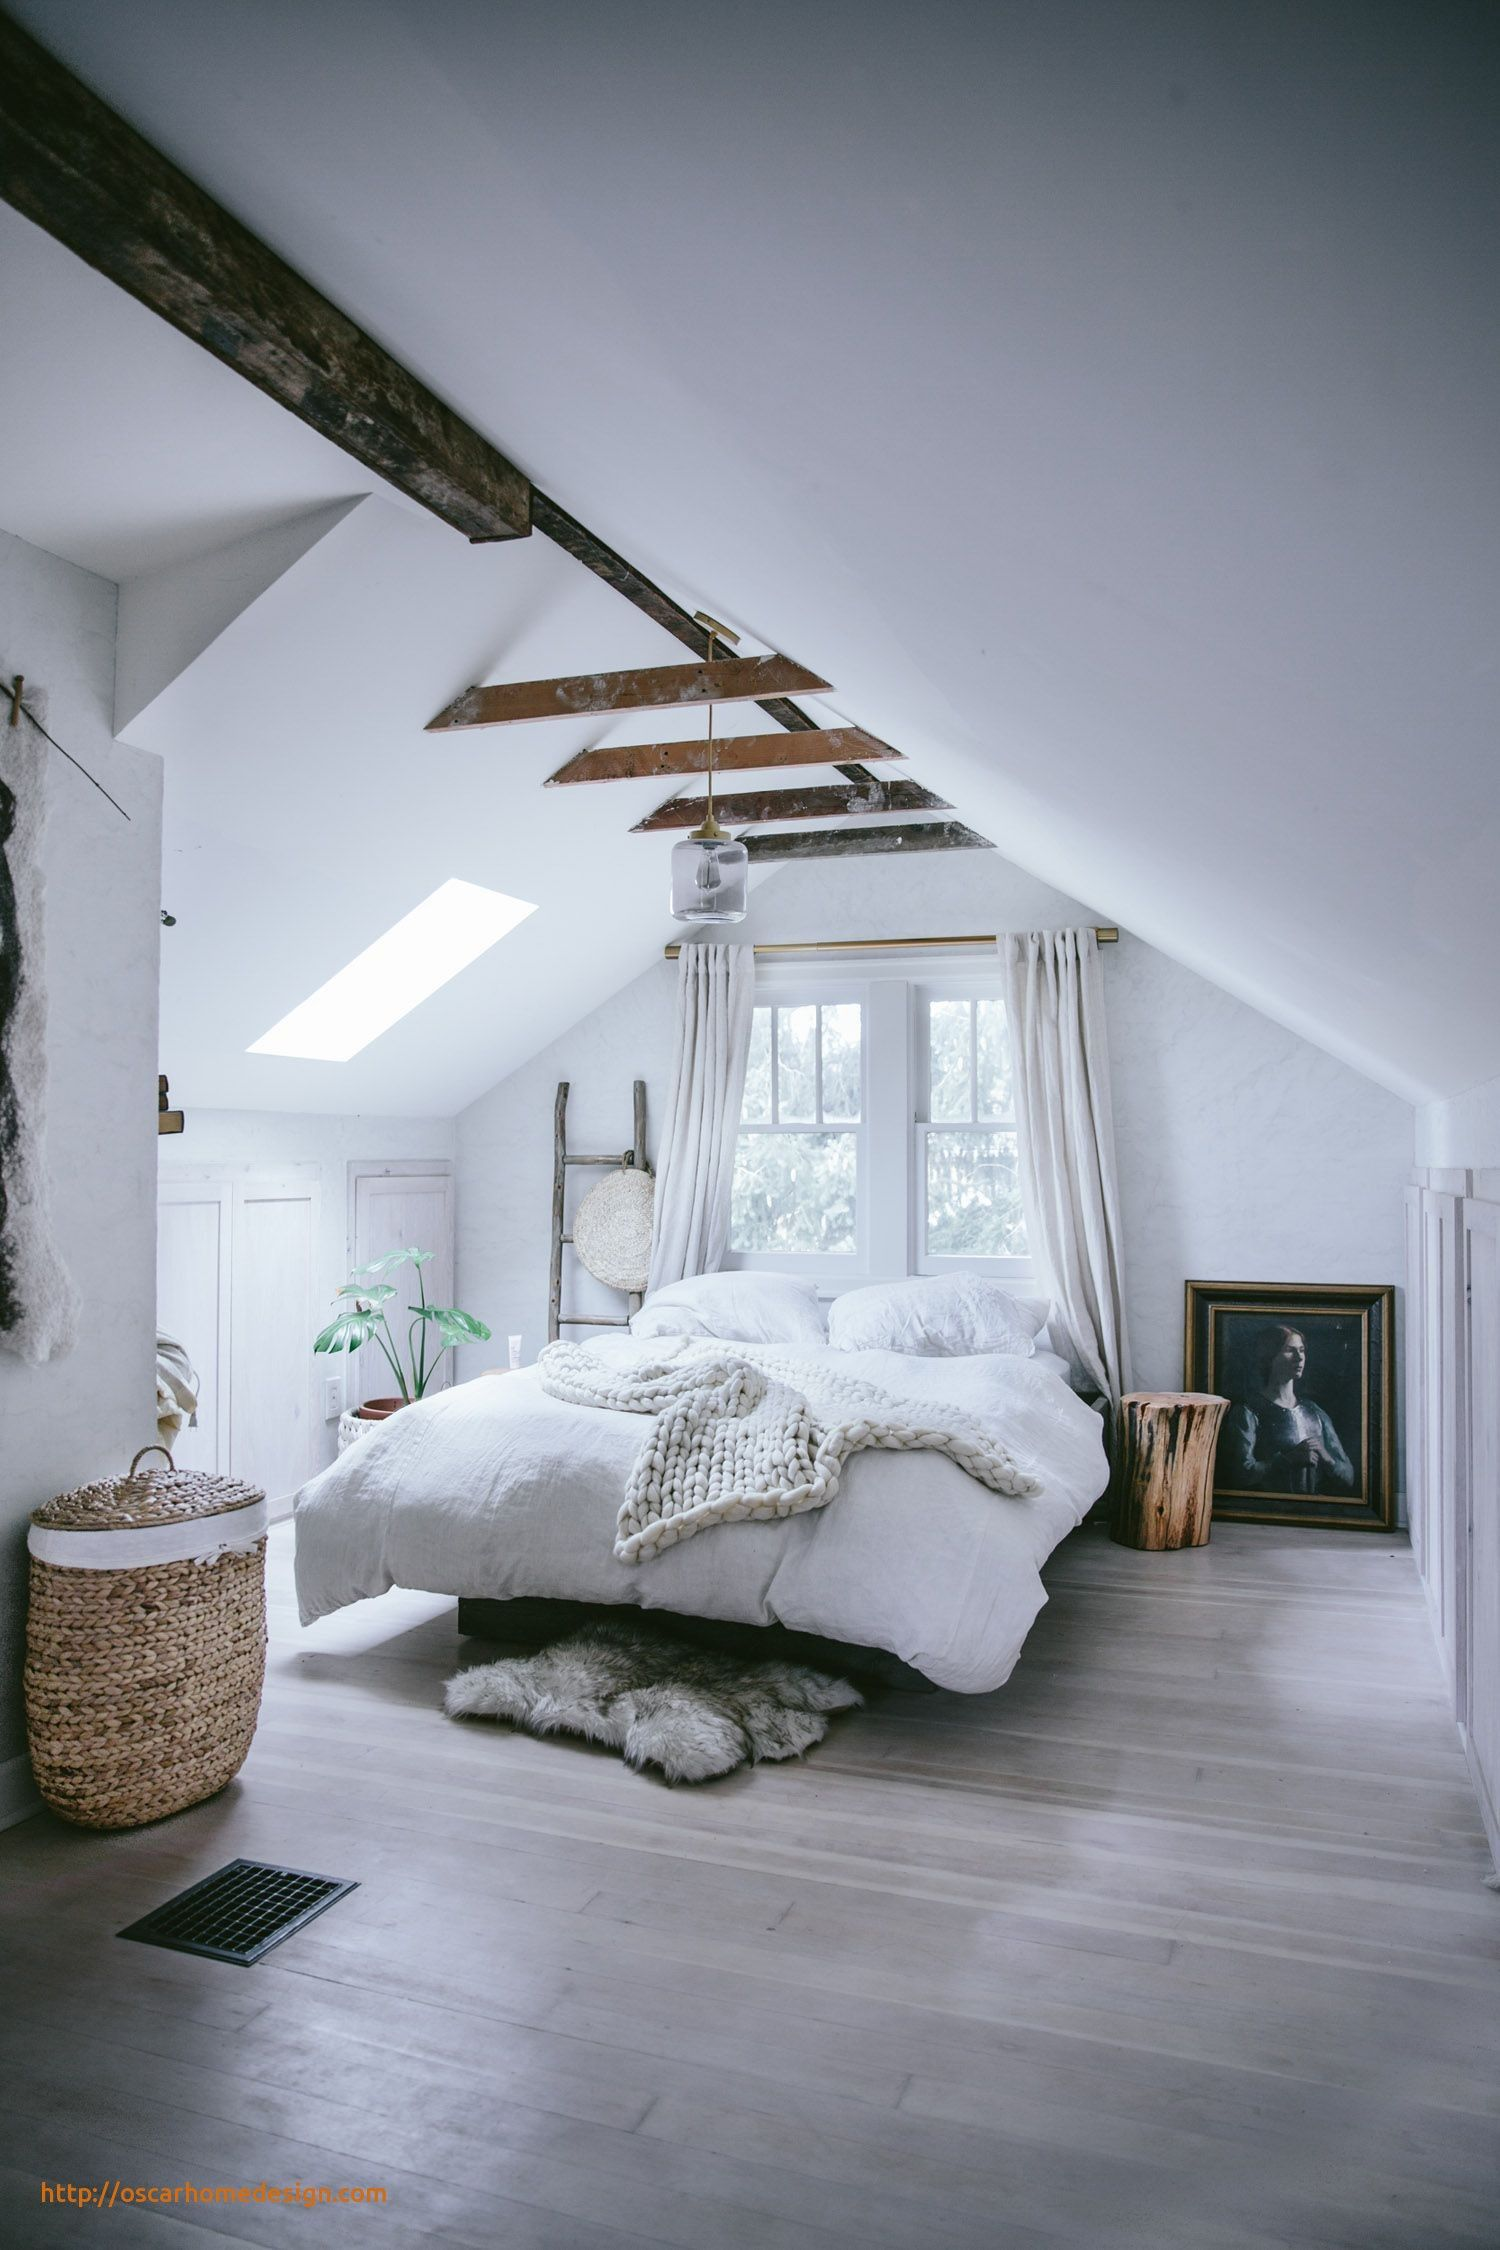 Cozy master bedroom decor  This rustic attic bedroom didn t always look this cozy Check out